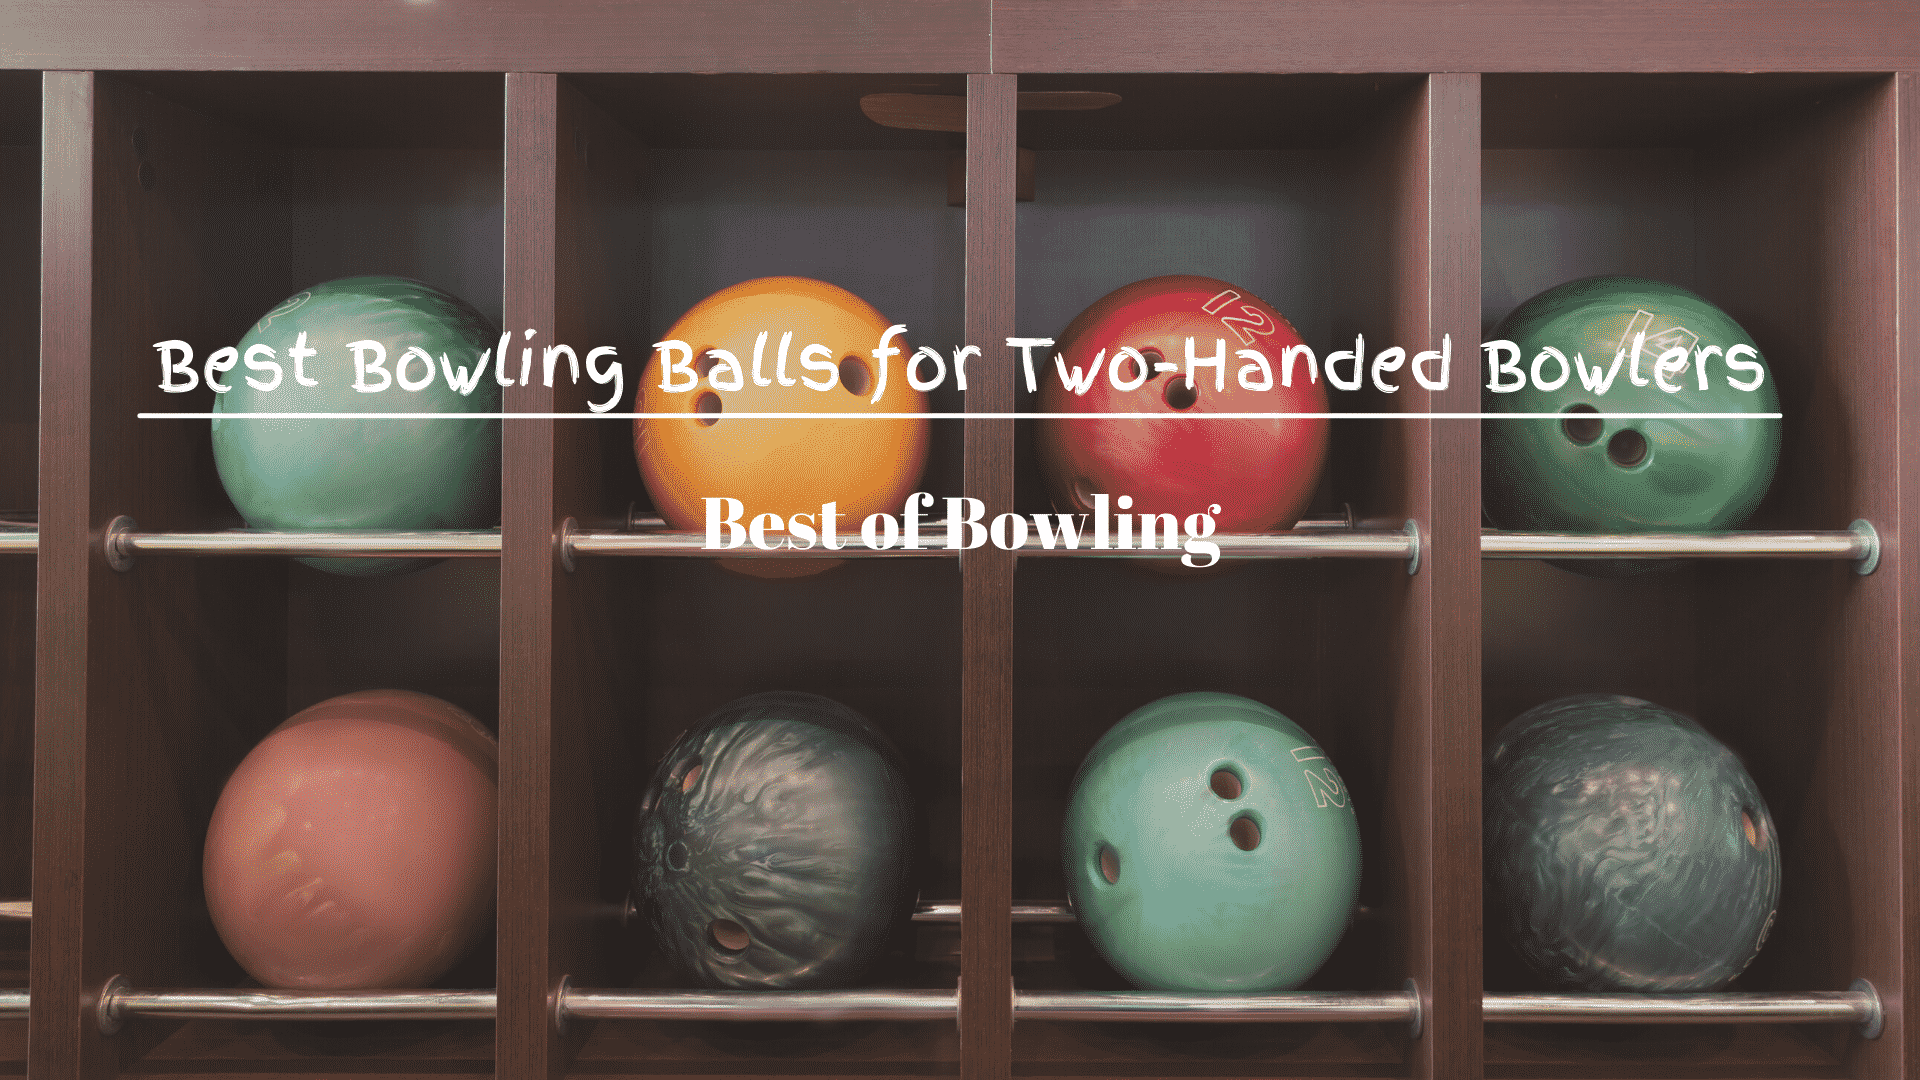 Best Bowling Balls for Two-Handed Bowlers